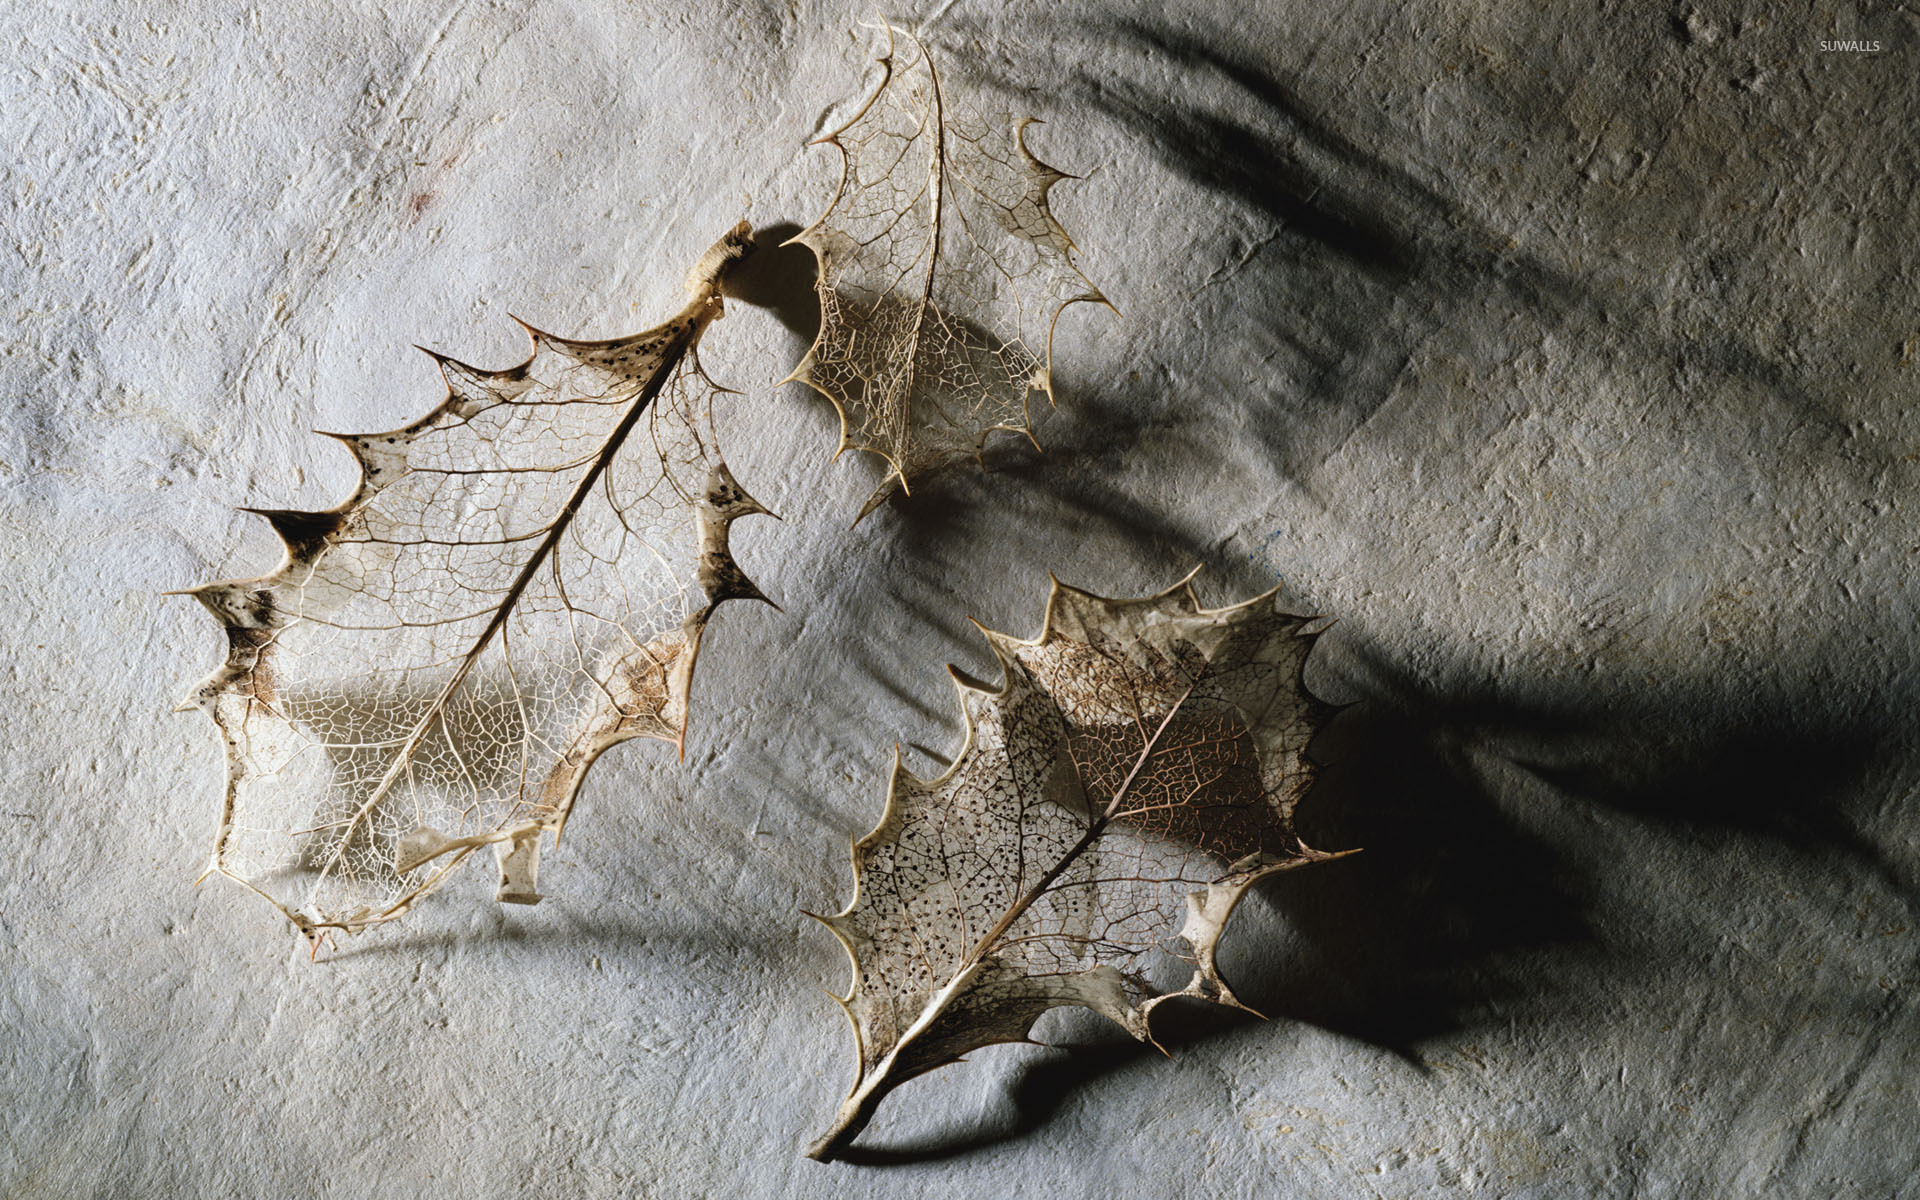 Dry leaves wallpaper - Photography wallpapers - #6669